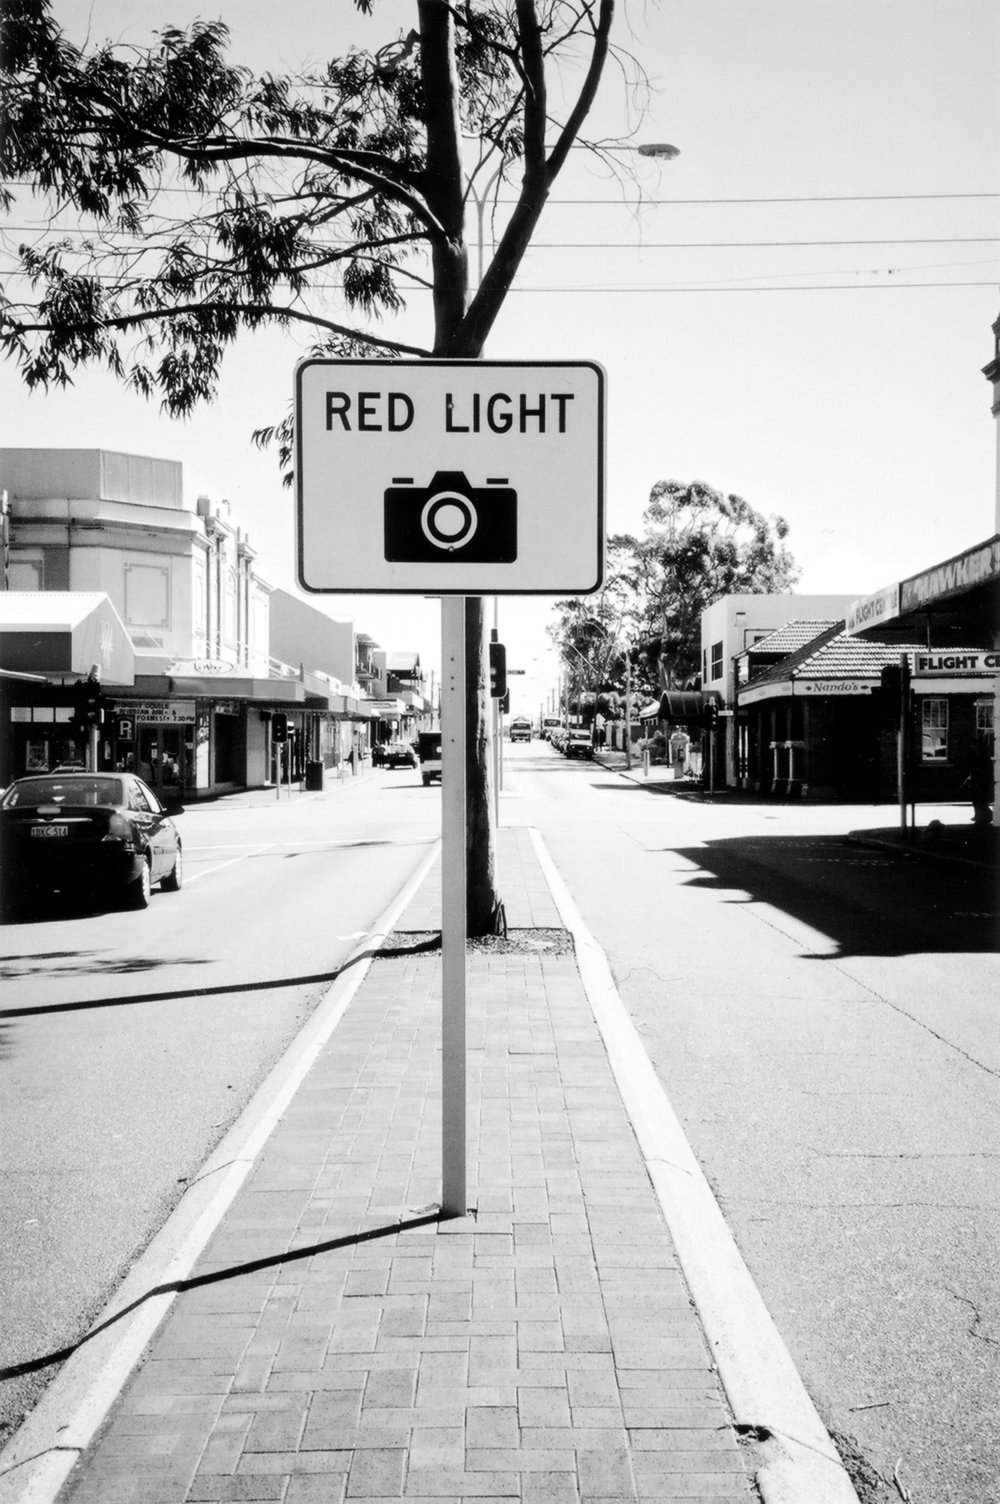 red light clu.jpg